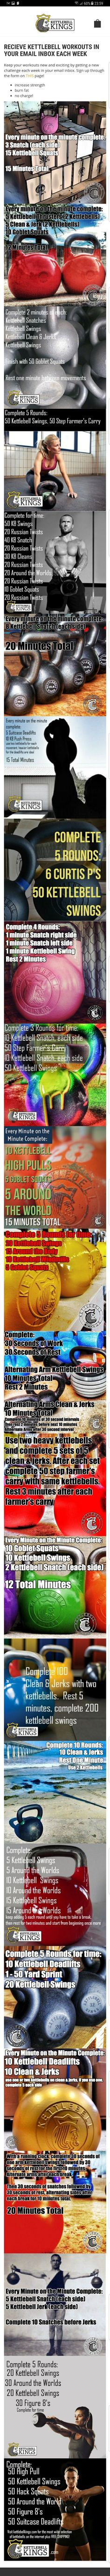 Kettlebell Workouts from info.kettlebellkings.com https://www.kettlebellmaniac.com/kettlebell-exercises/